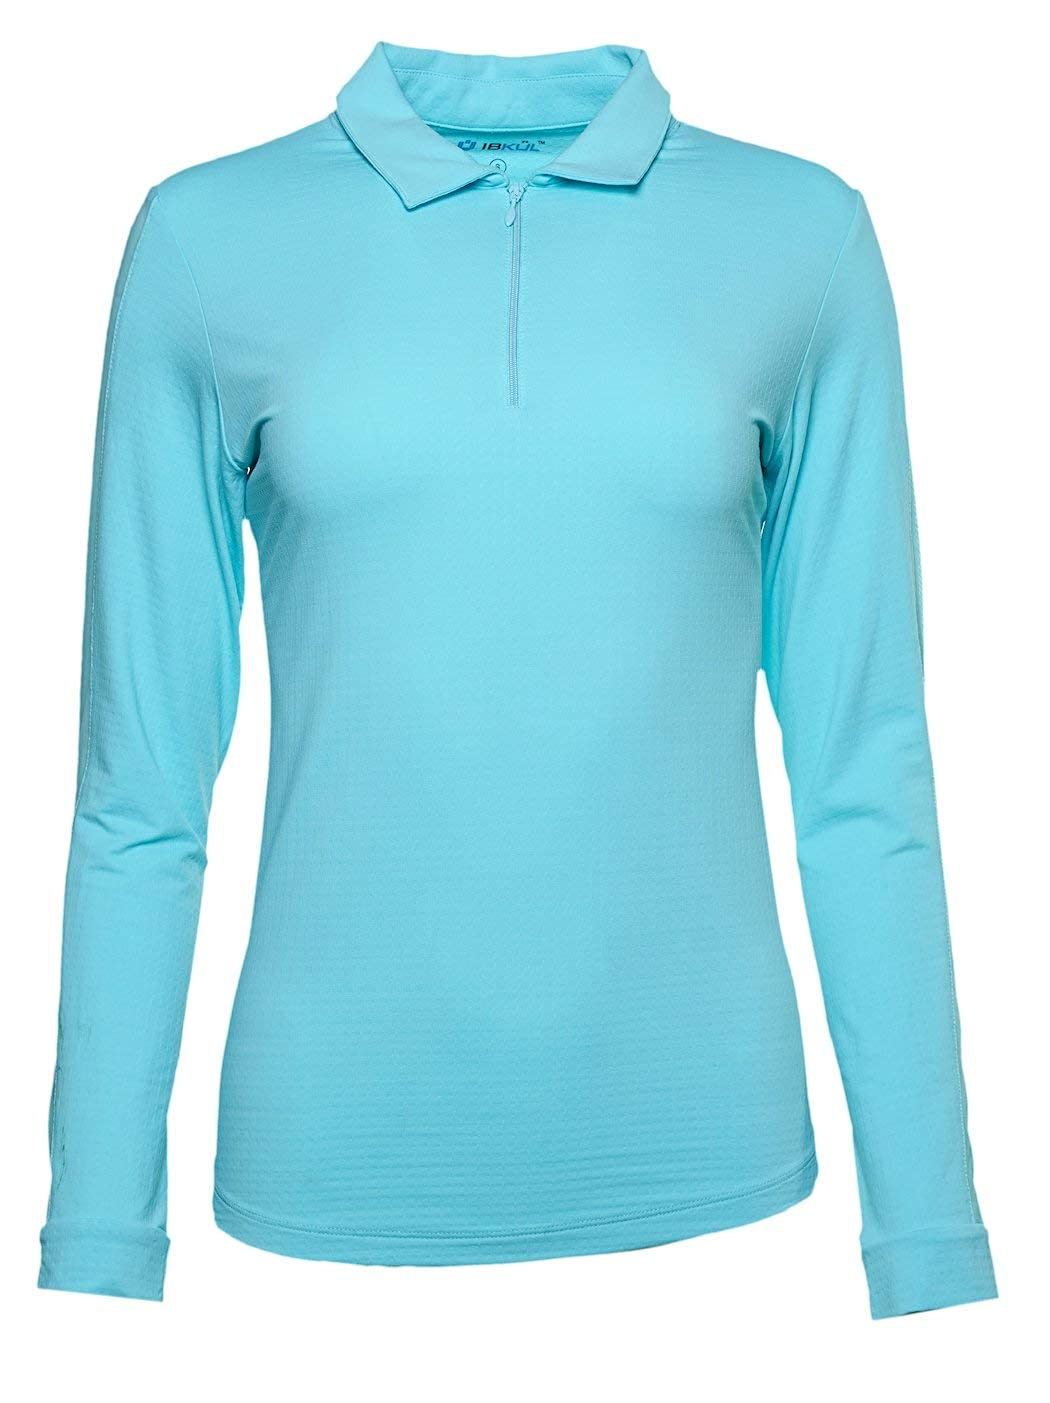 IBKUL Women's Sun Protective UPF 50+ Cooling Solid Long Sleeve Polo (Outer Mesh Panel) - 86000